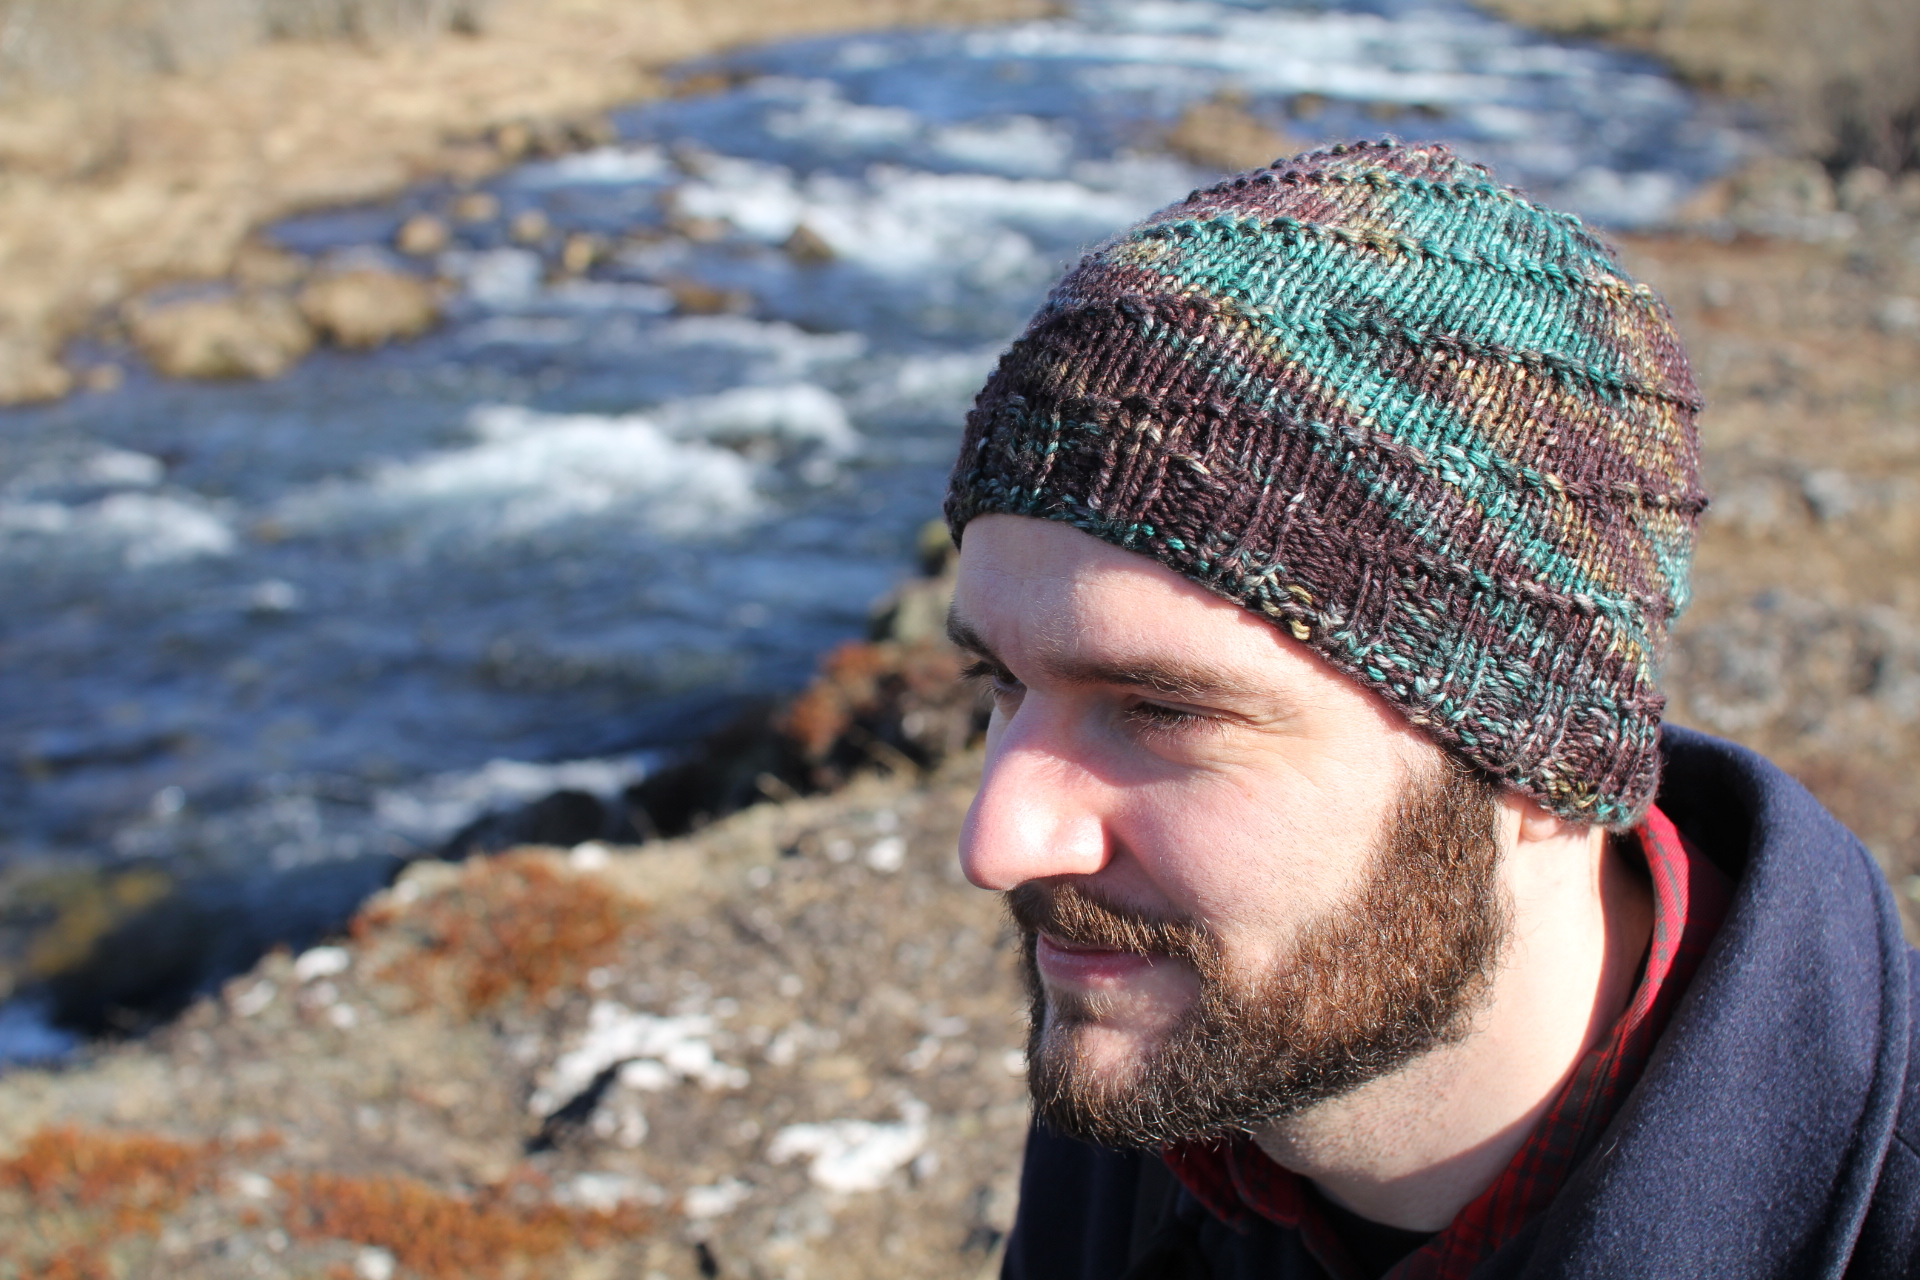 My husband wearing his first hat which he knitted and dyed the yarn for!